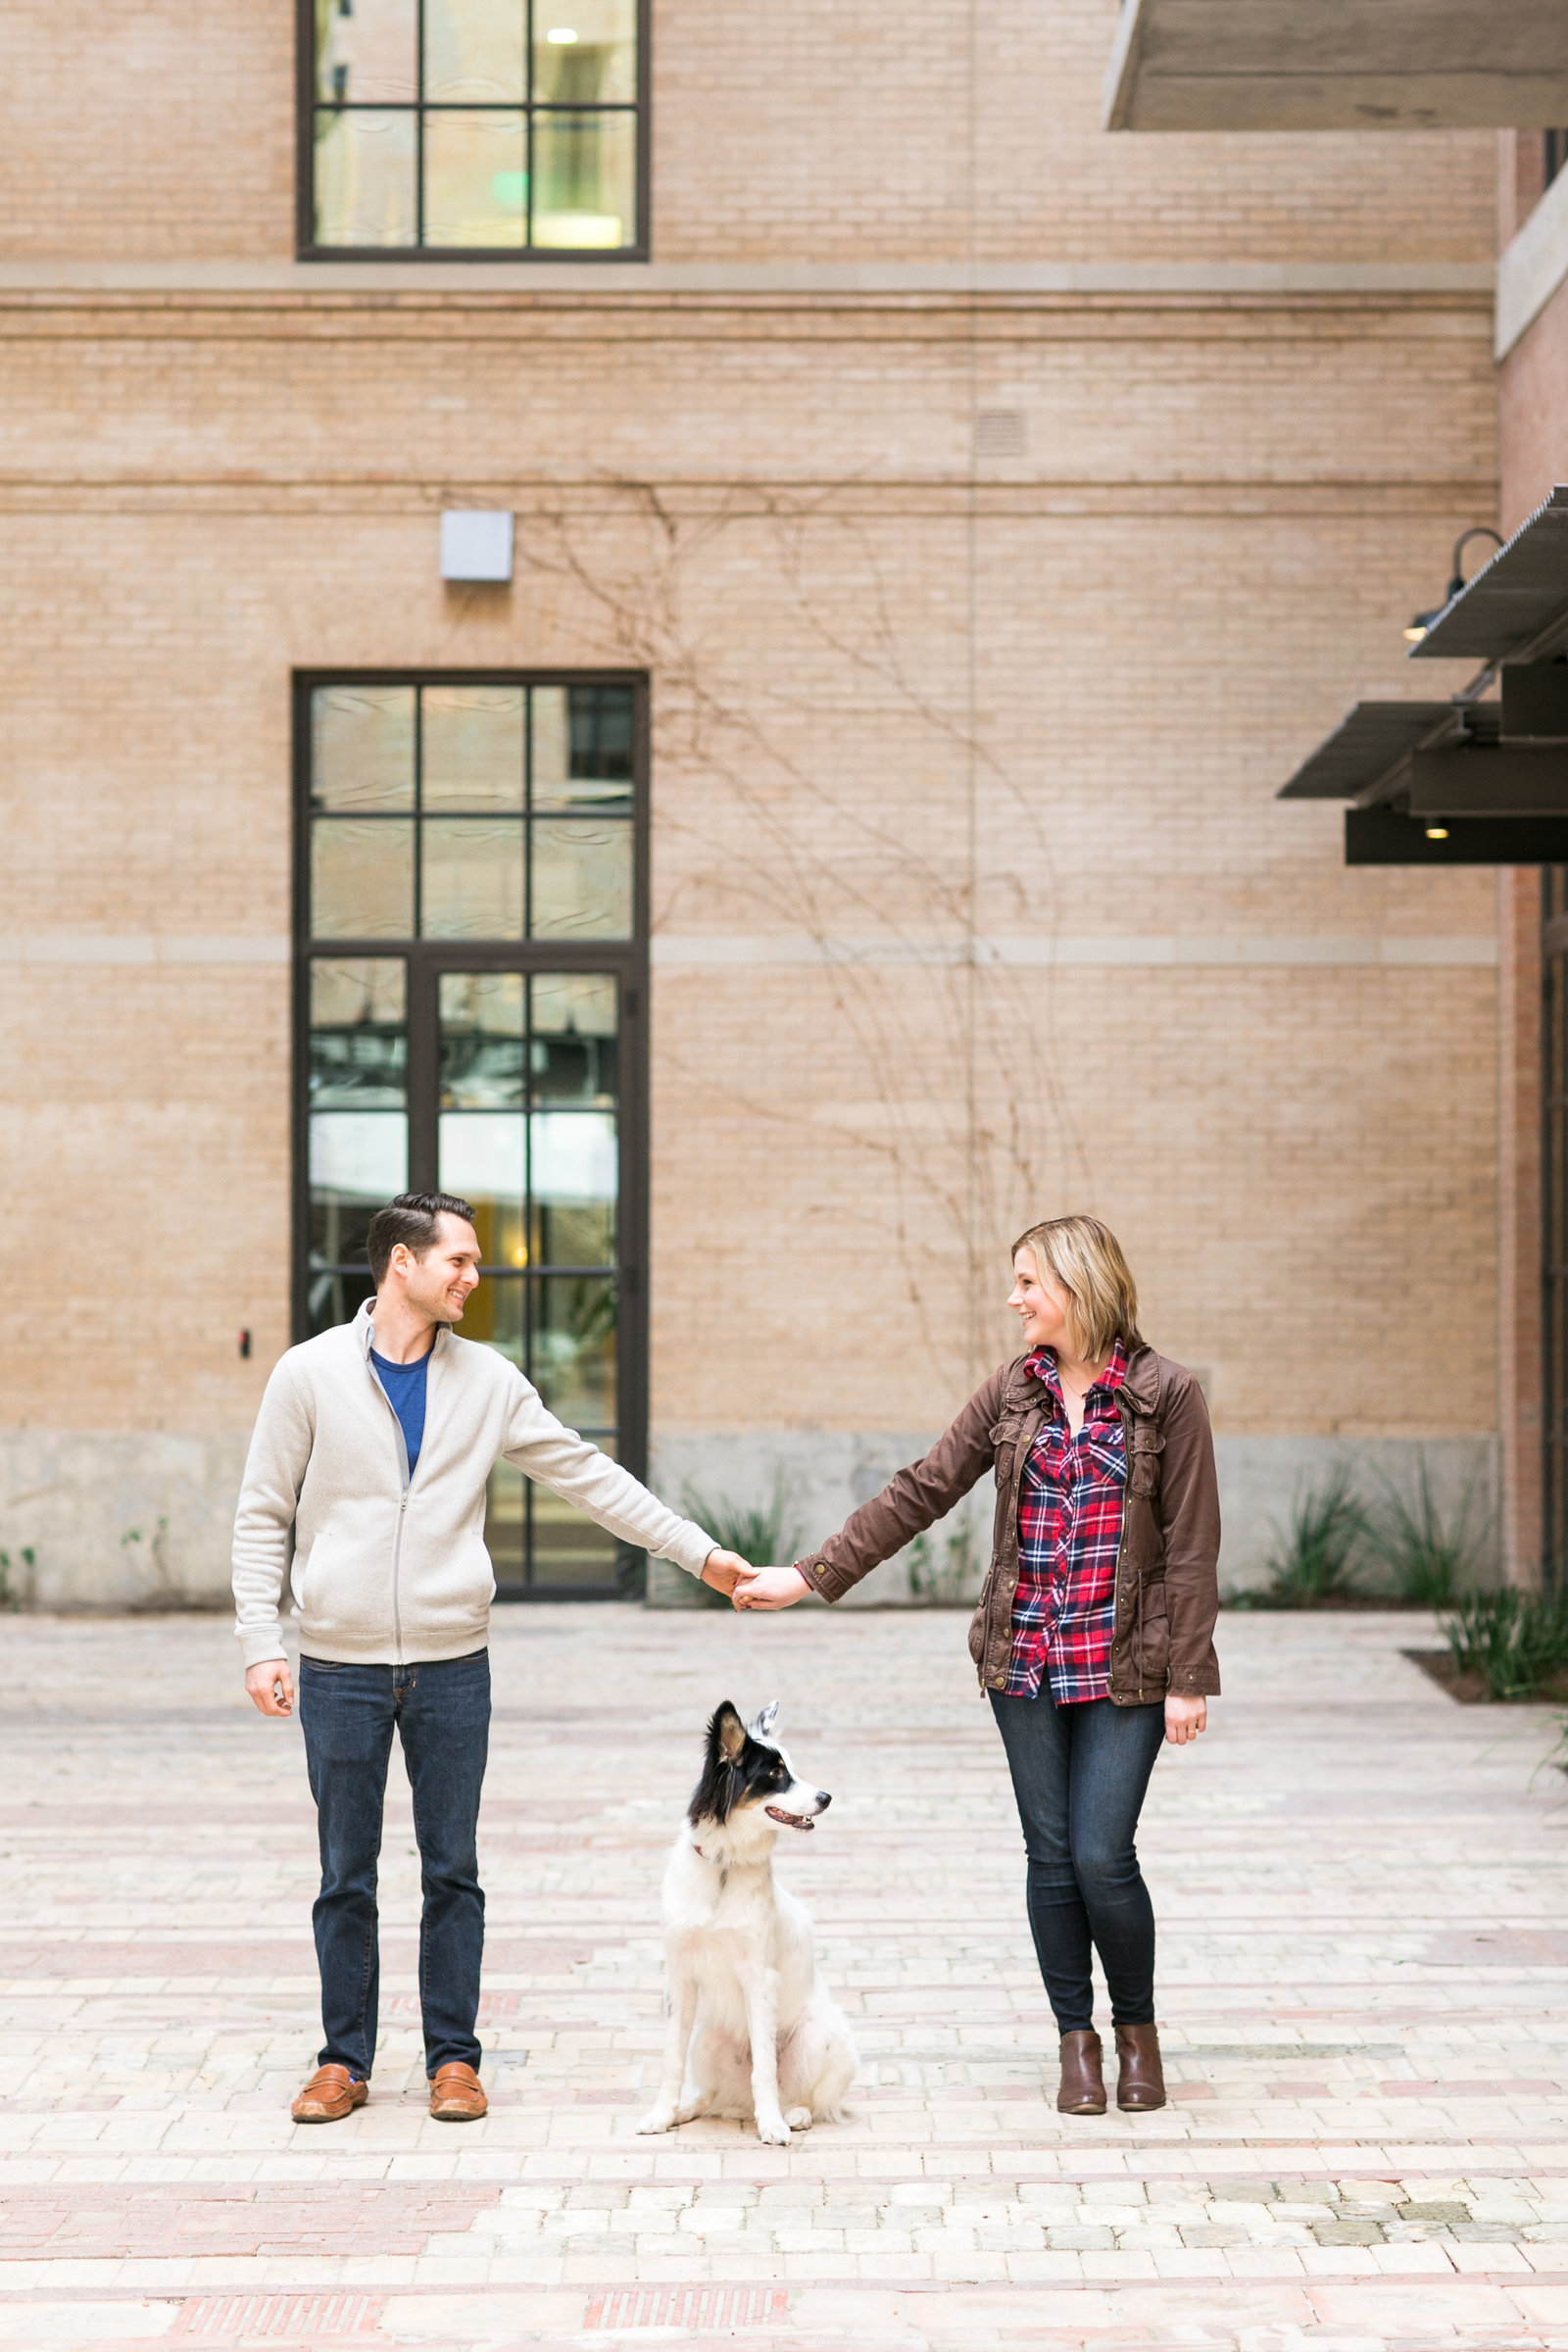 pearl-brewery-stables-river-walk-san-antonio-texas-engagement-session-photo-17